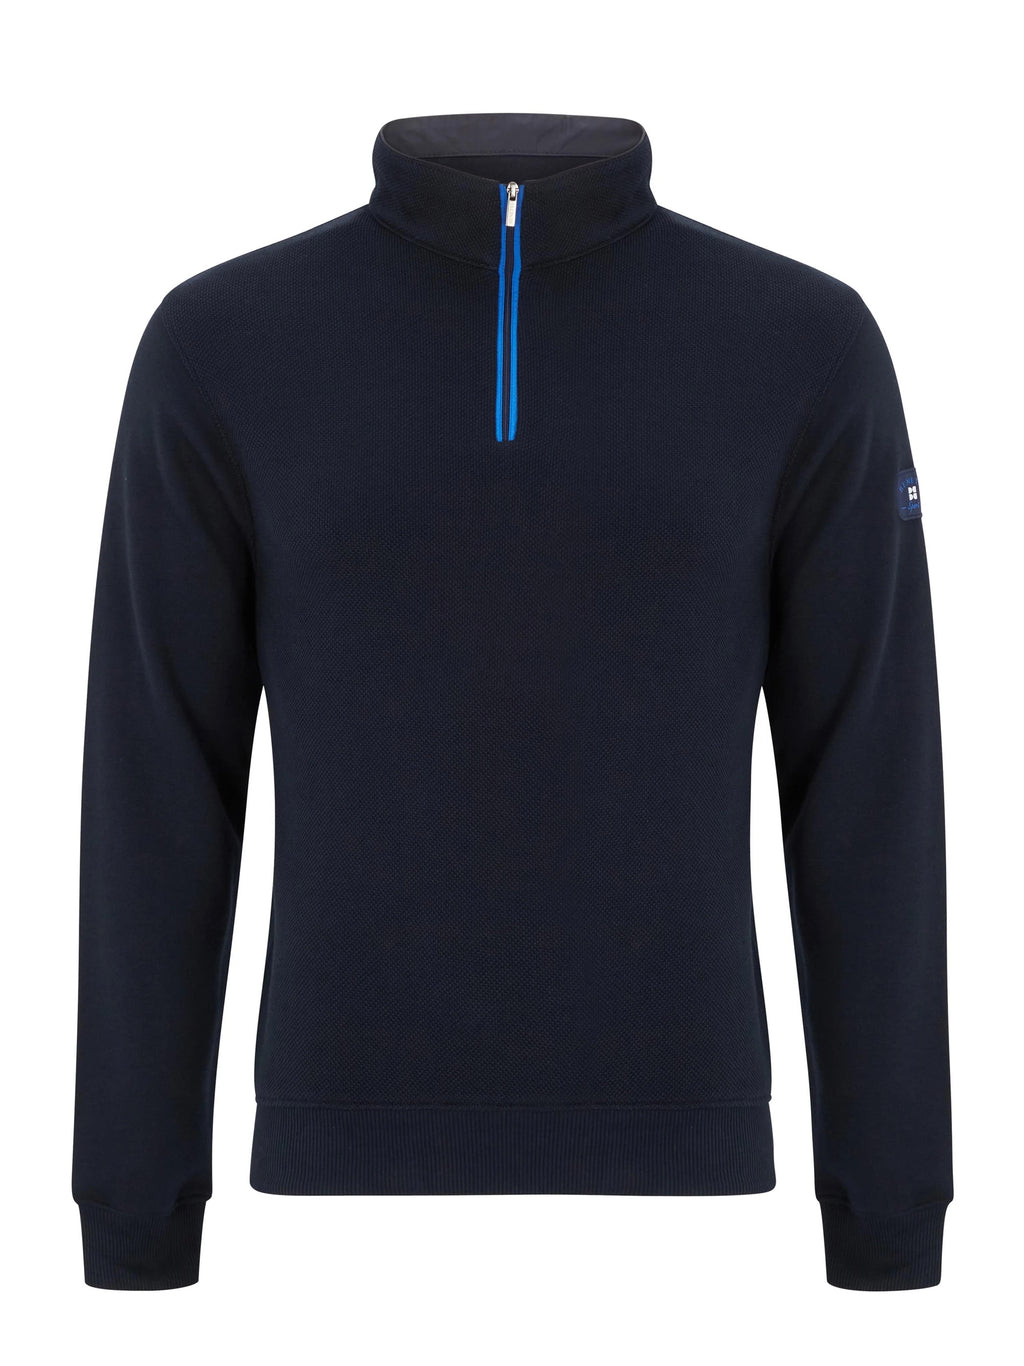 Benetti George Half Zip - Navy - jjdonnelly